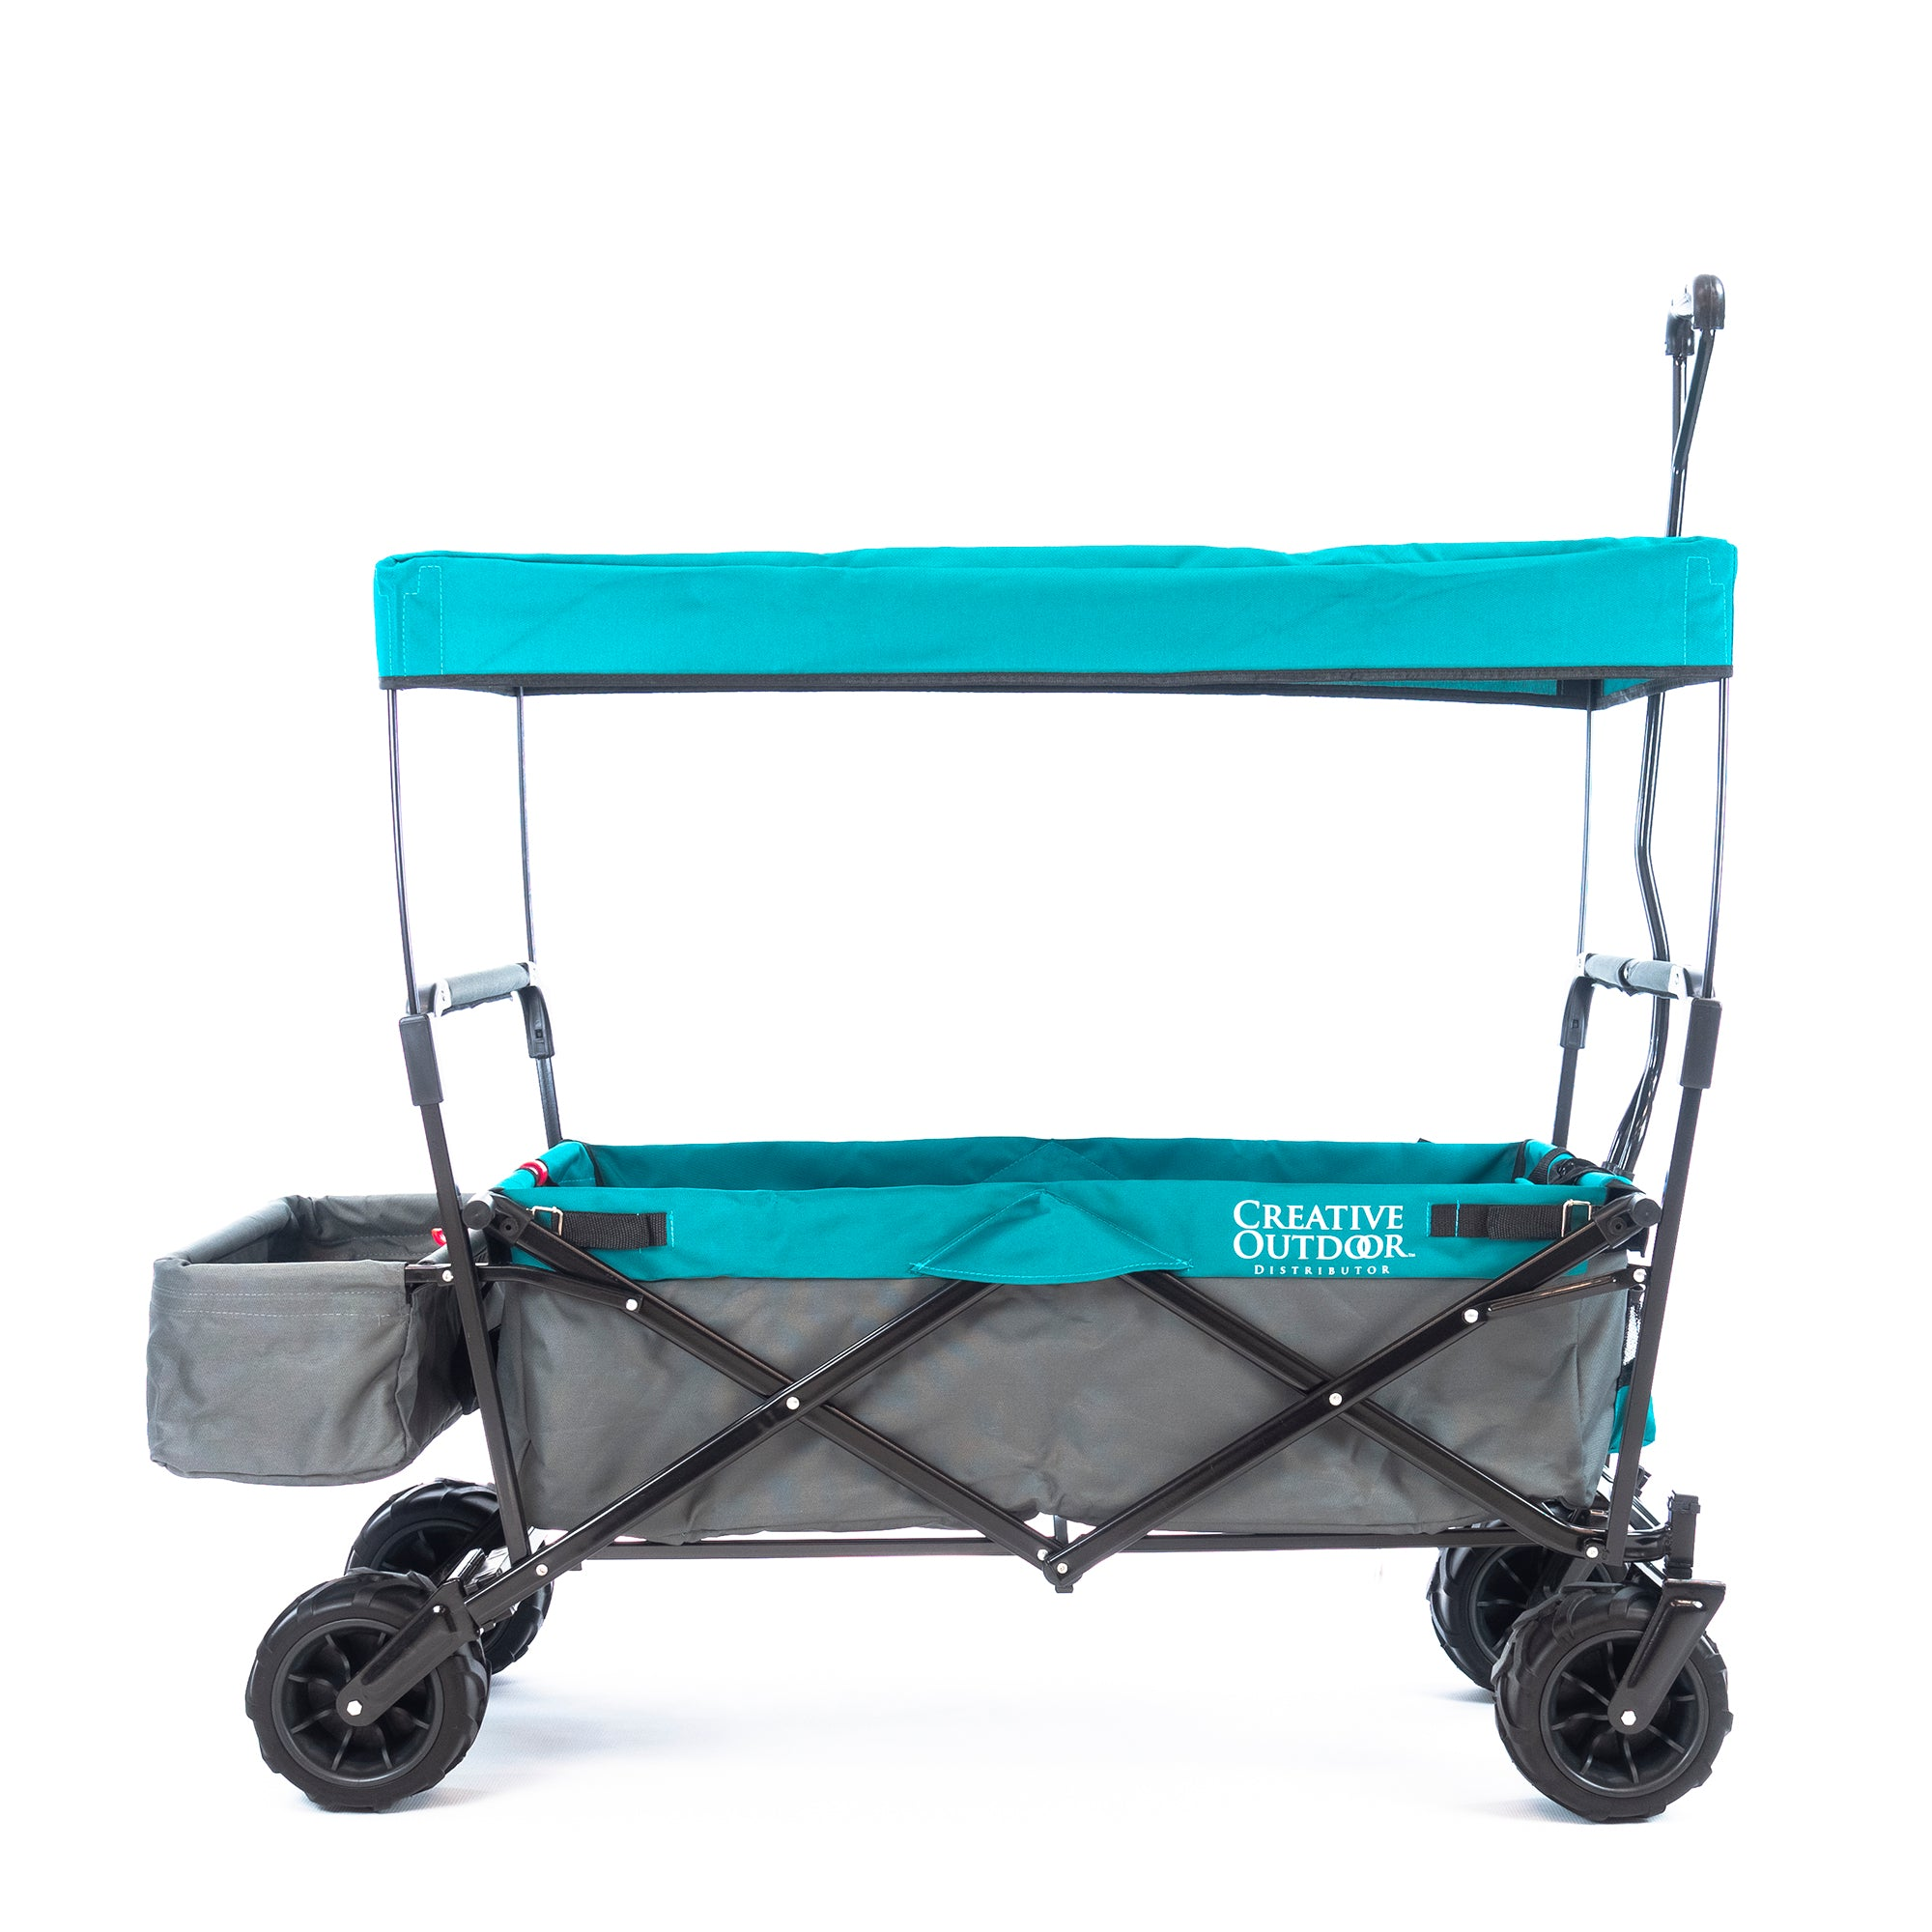 All-Terrain Folding Wagon with Canopy | Gray Teal